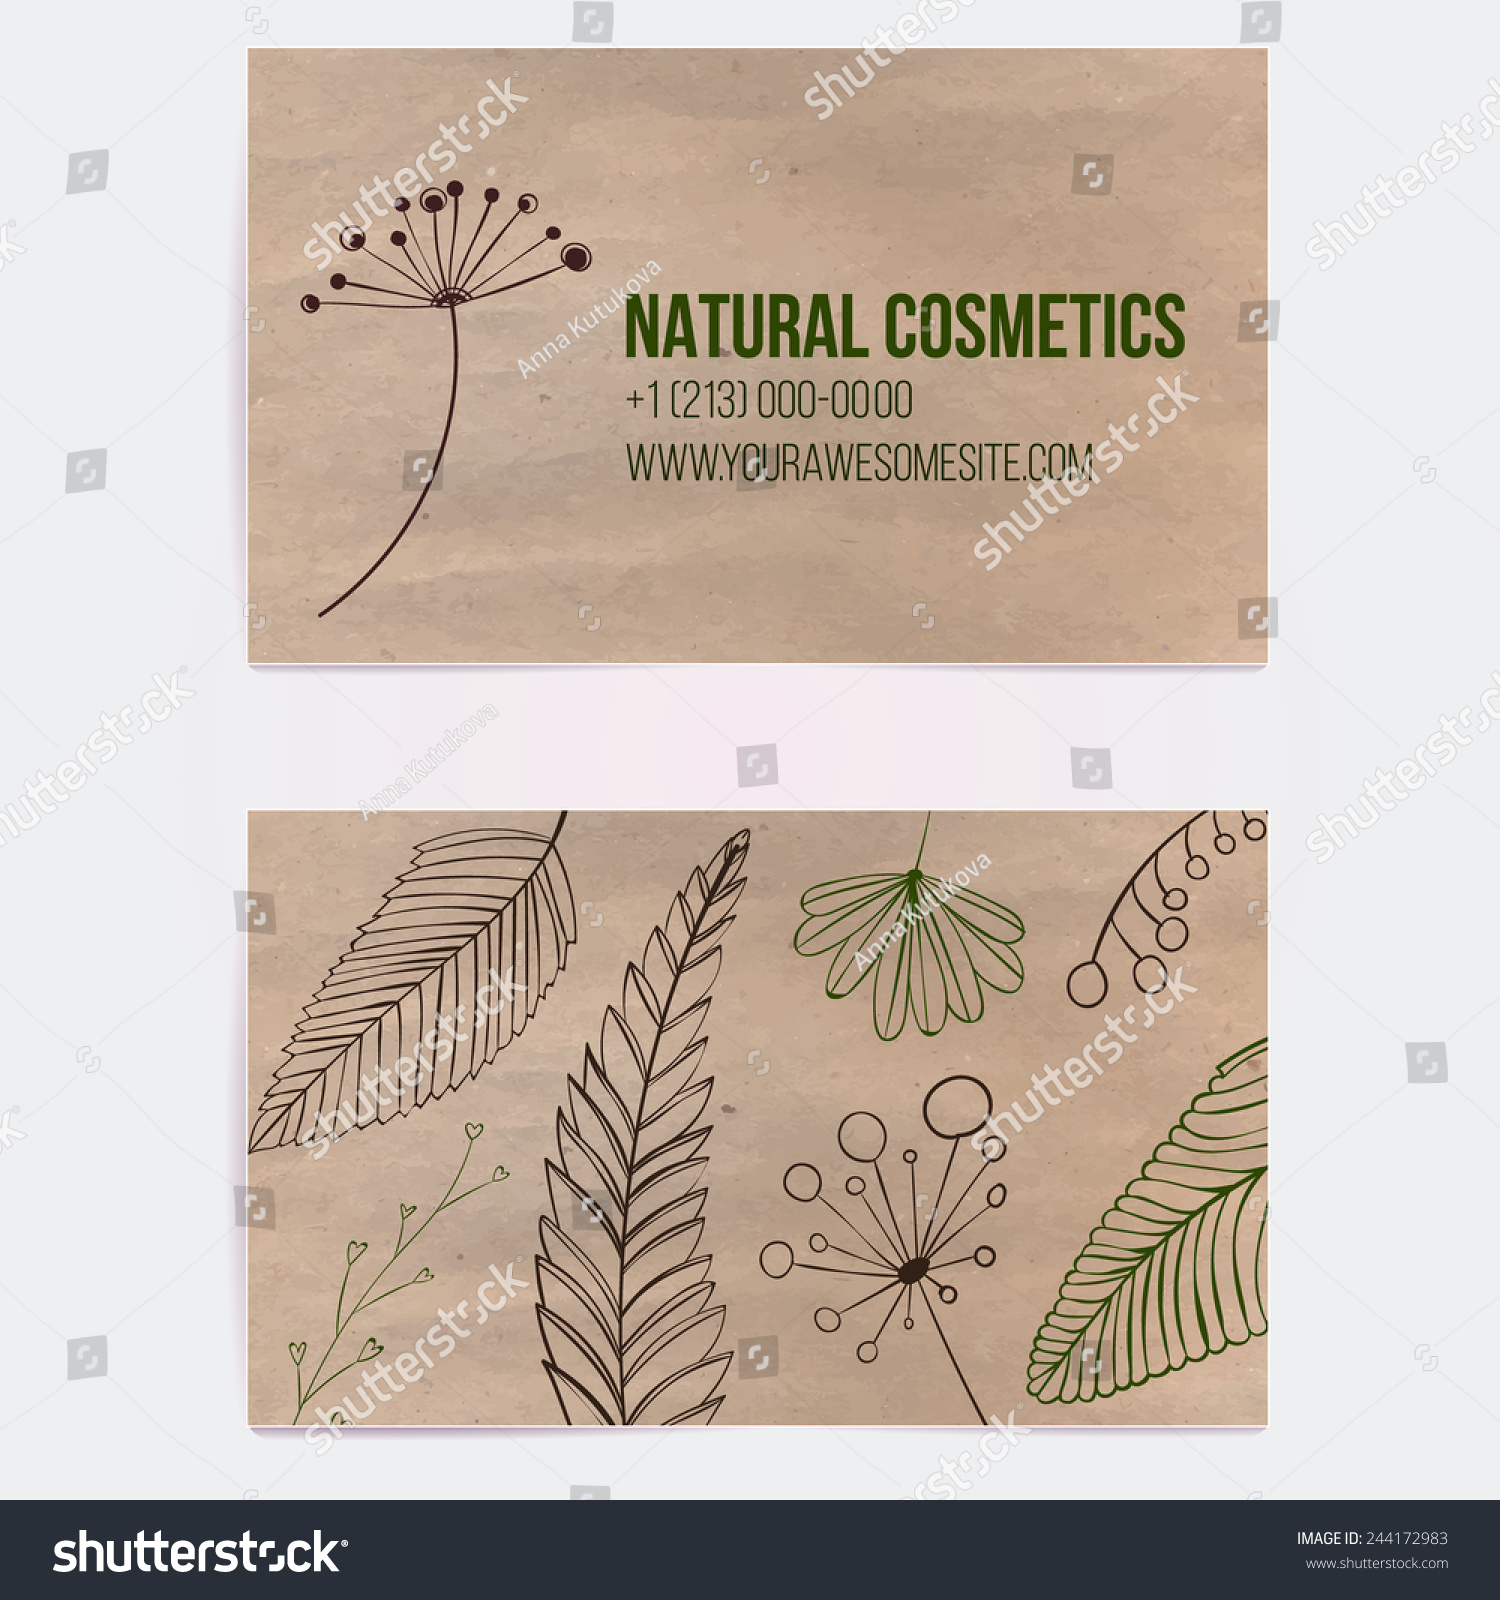 Two Sided Business Card Natural Cosmetics Stock Vector (2018 ...